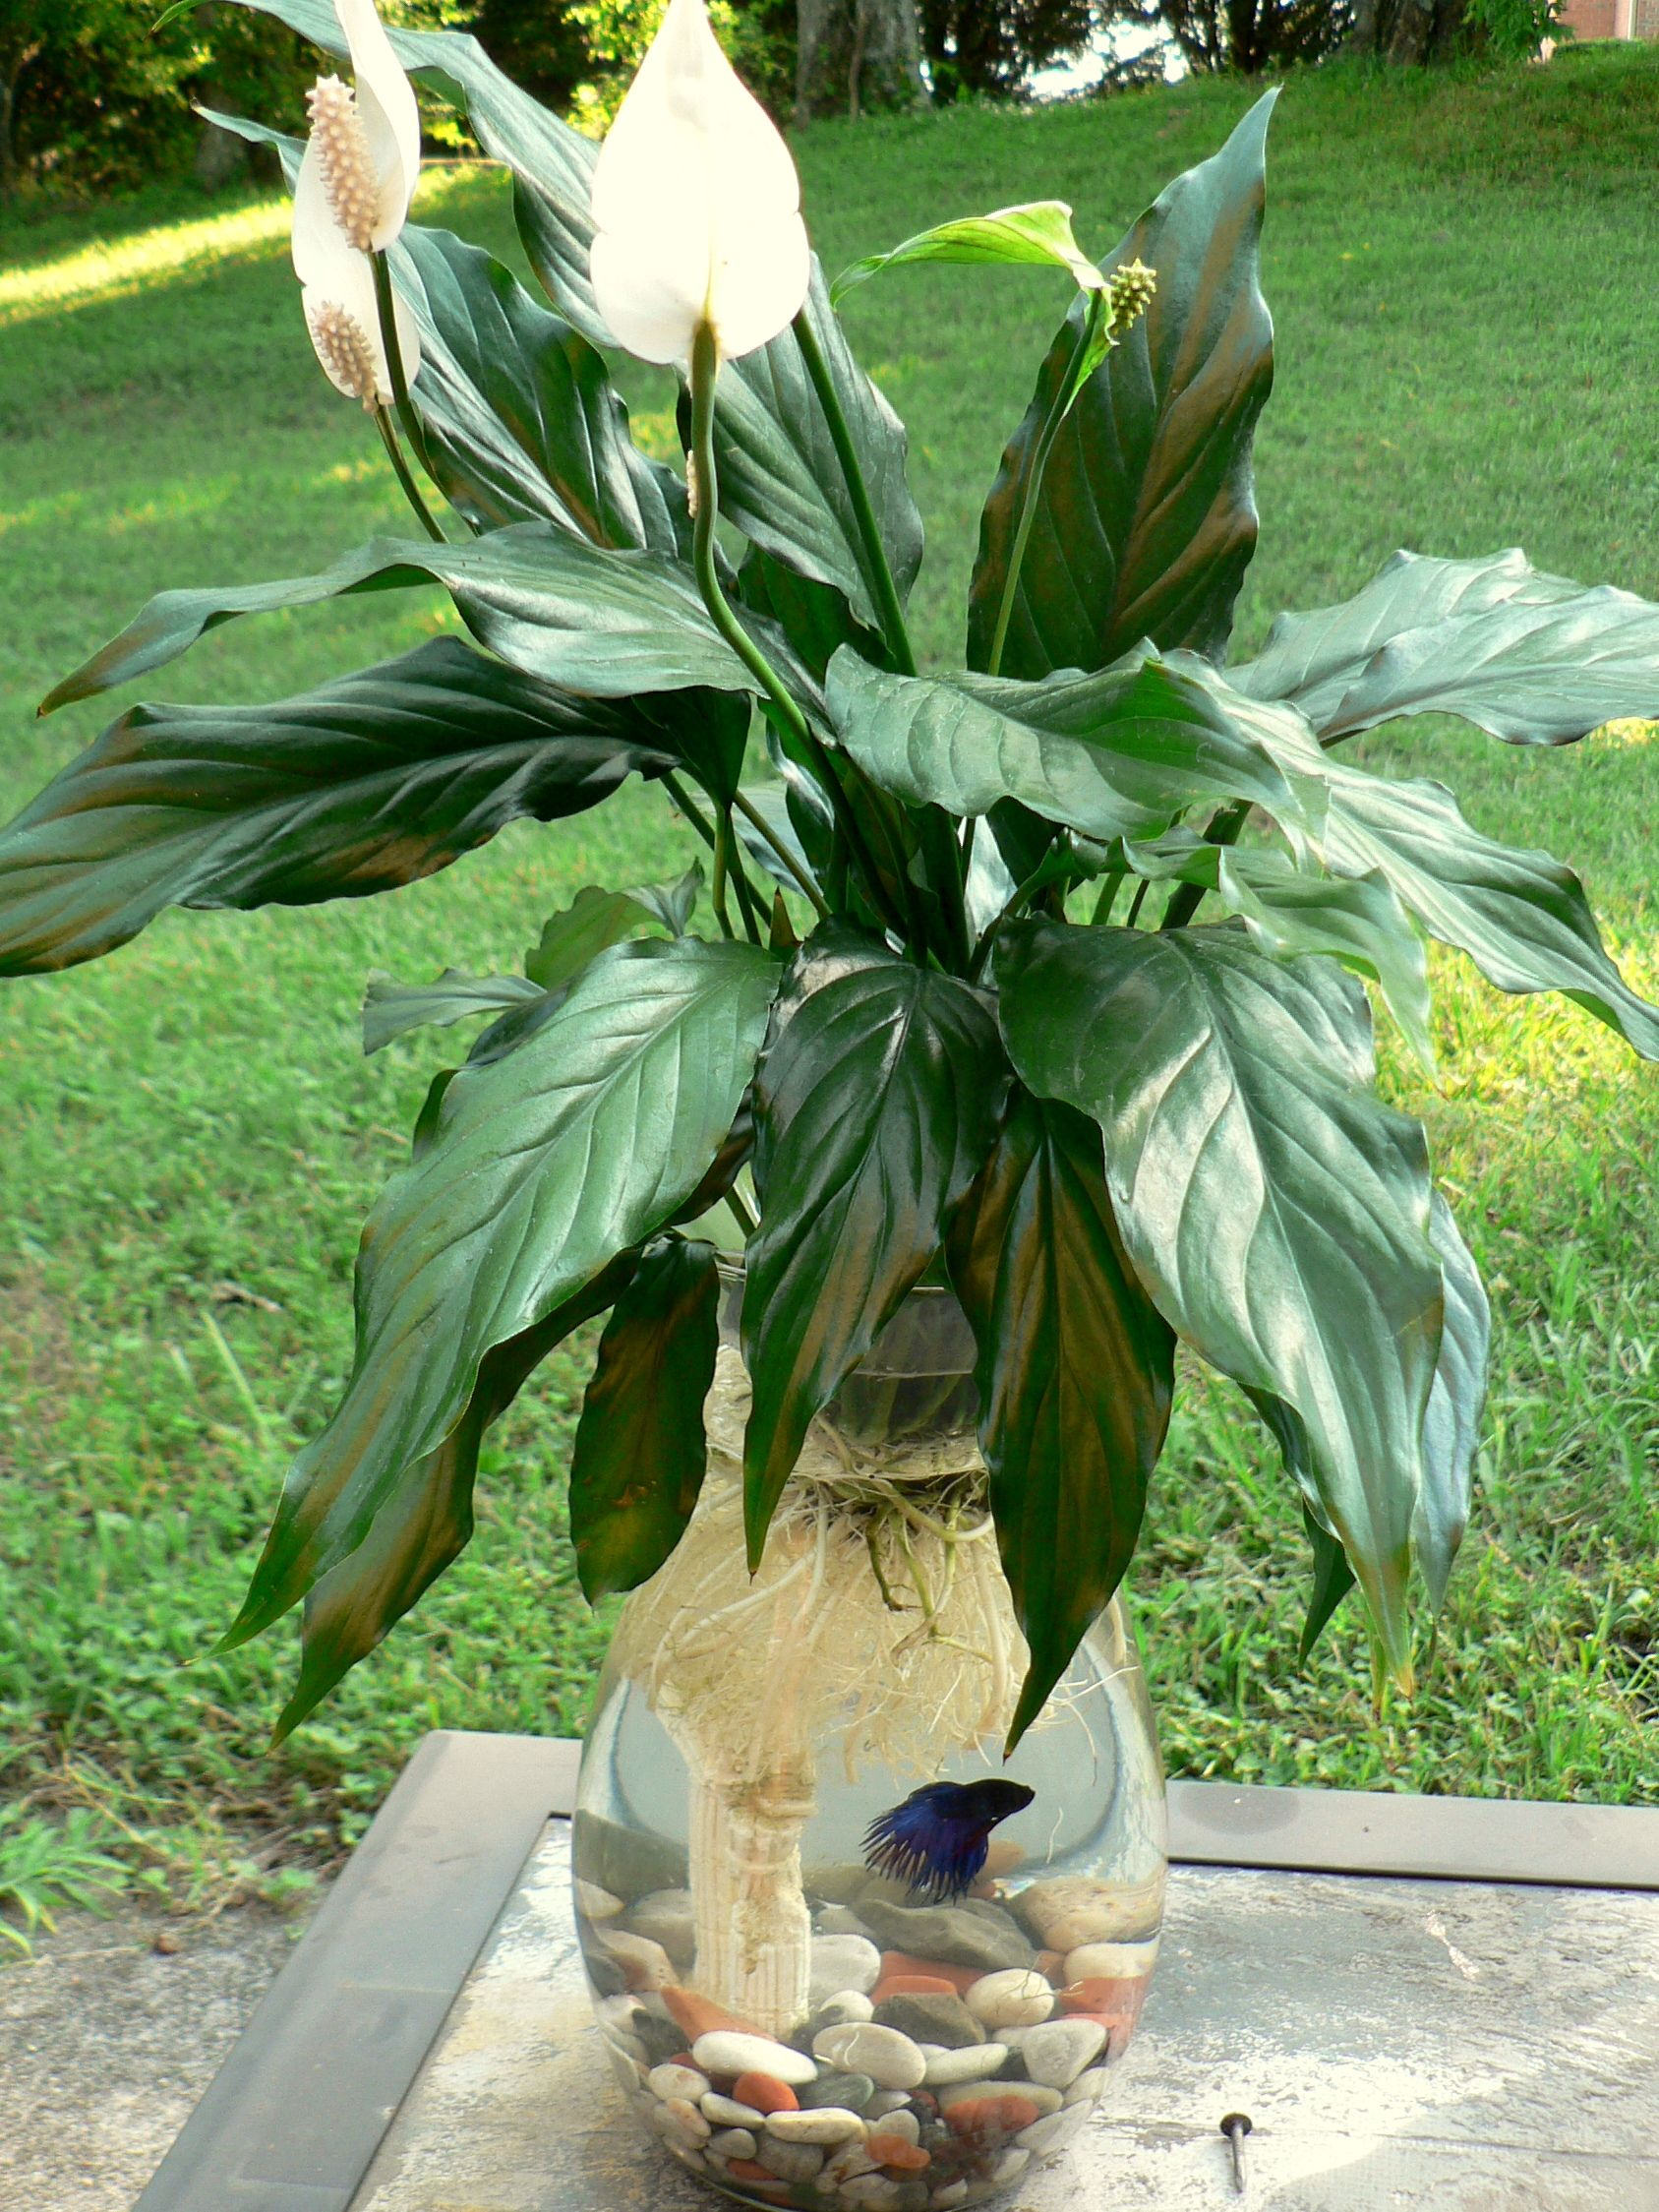 The Easiest Way To Make A Betta Fish Amp Peace Lily Aquarium In A Vase Your Creative Bone